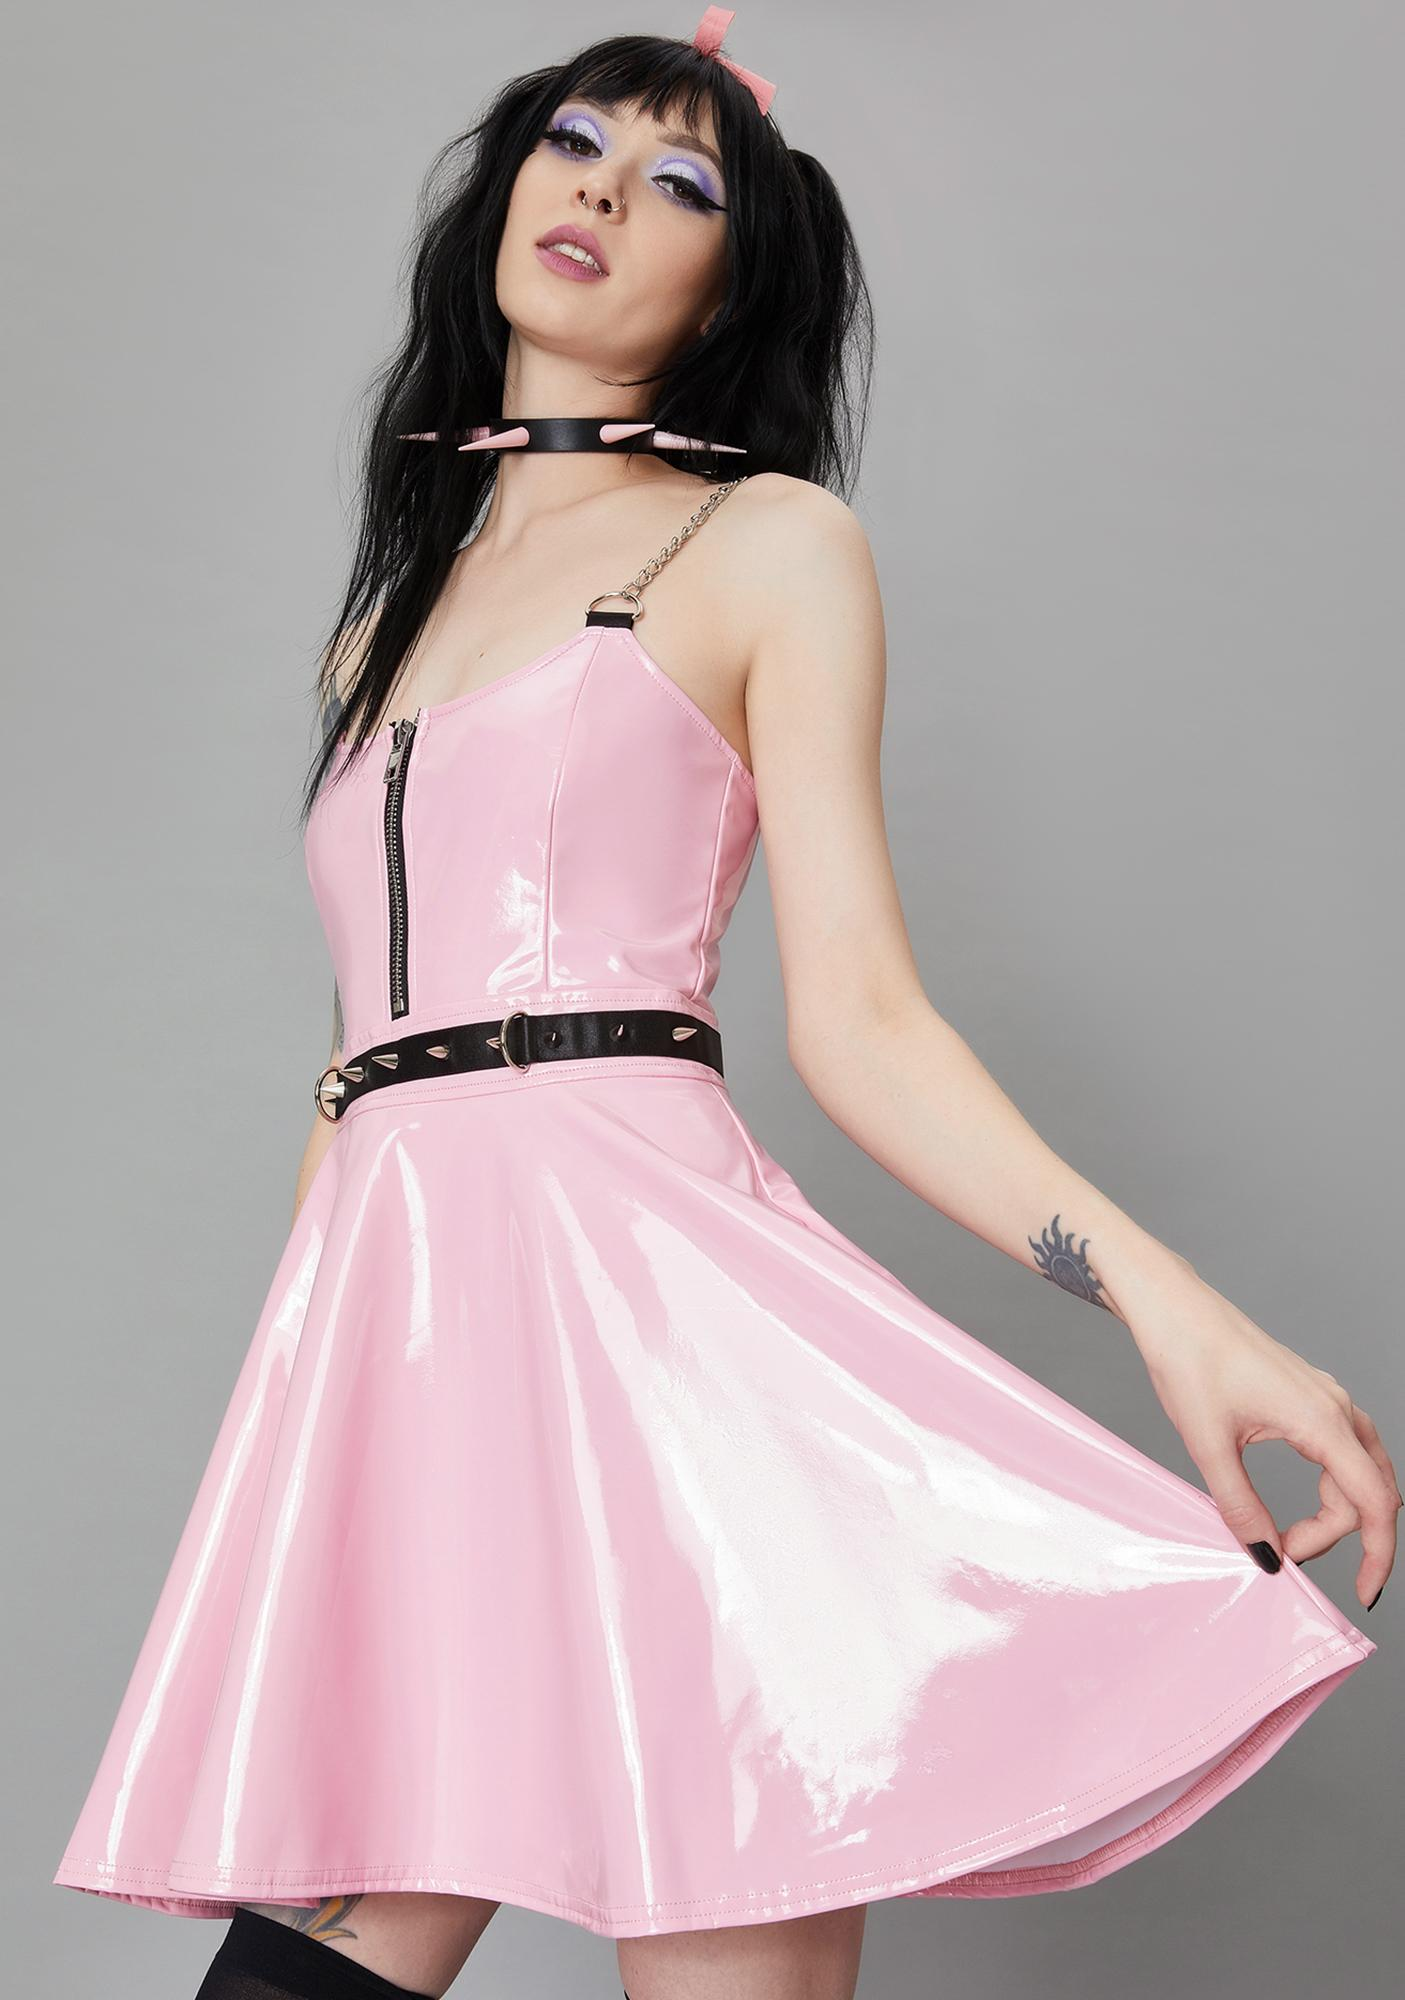 Widow Bound To You Bondage Dress